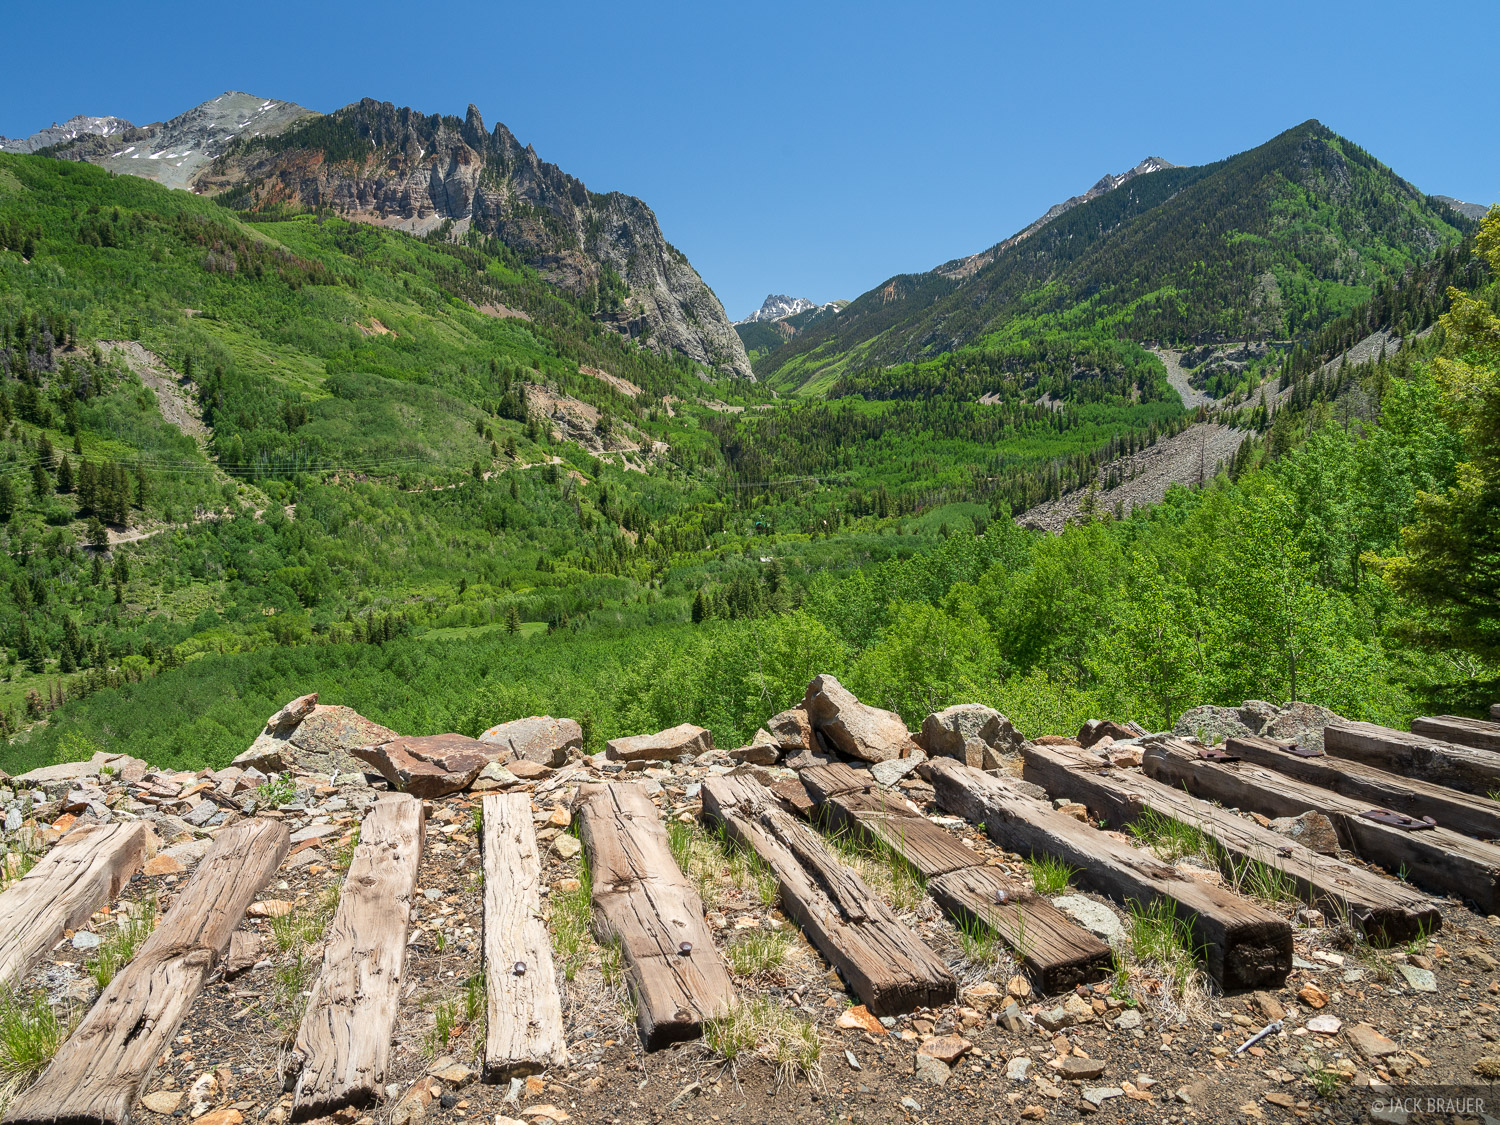 Remnants of railroad ties from the old Rio Grande Southern Railroad which ran from Ridgway to Durango with a branch to Telluride...